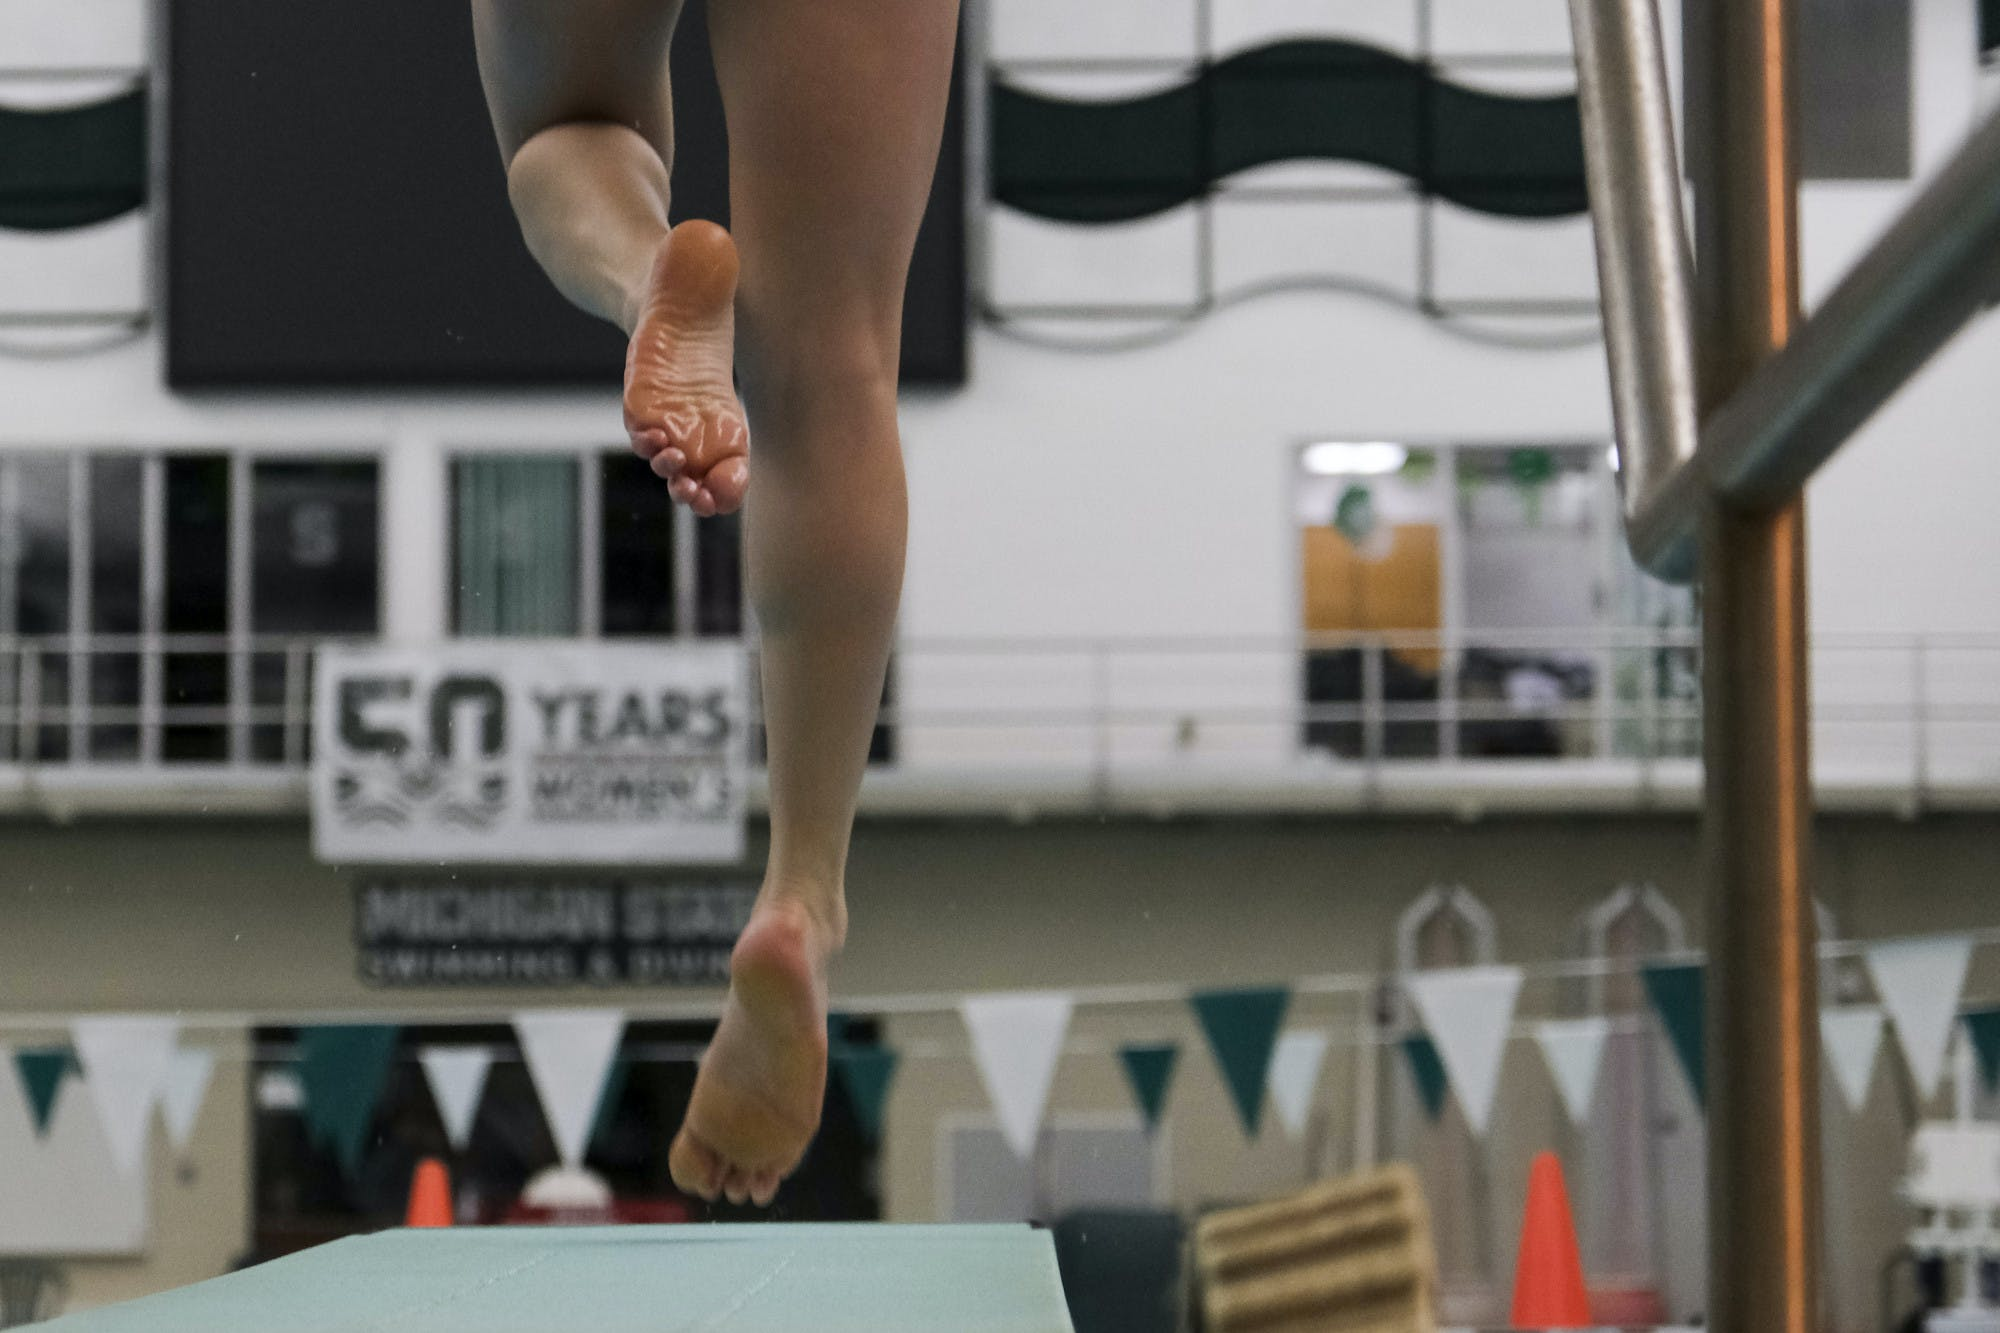 A person jumps up from a diving board with one leg straight and one leg bent. In the background are green and white pennants hanging on a string.